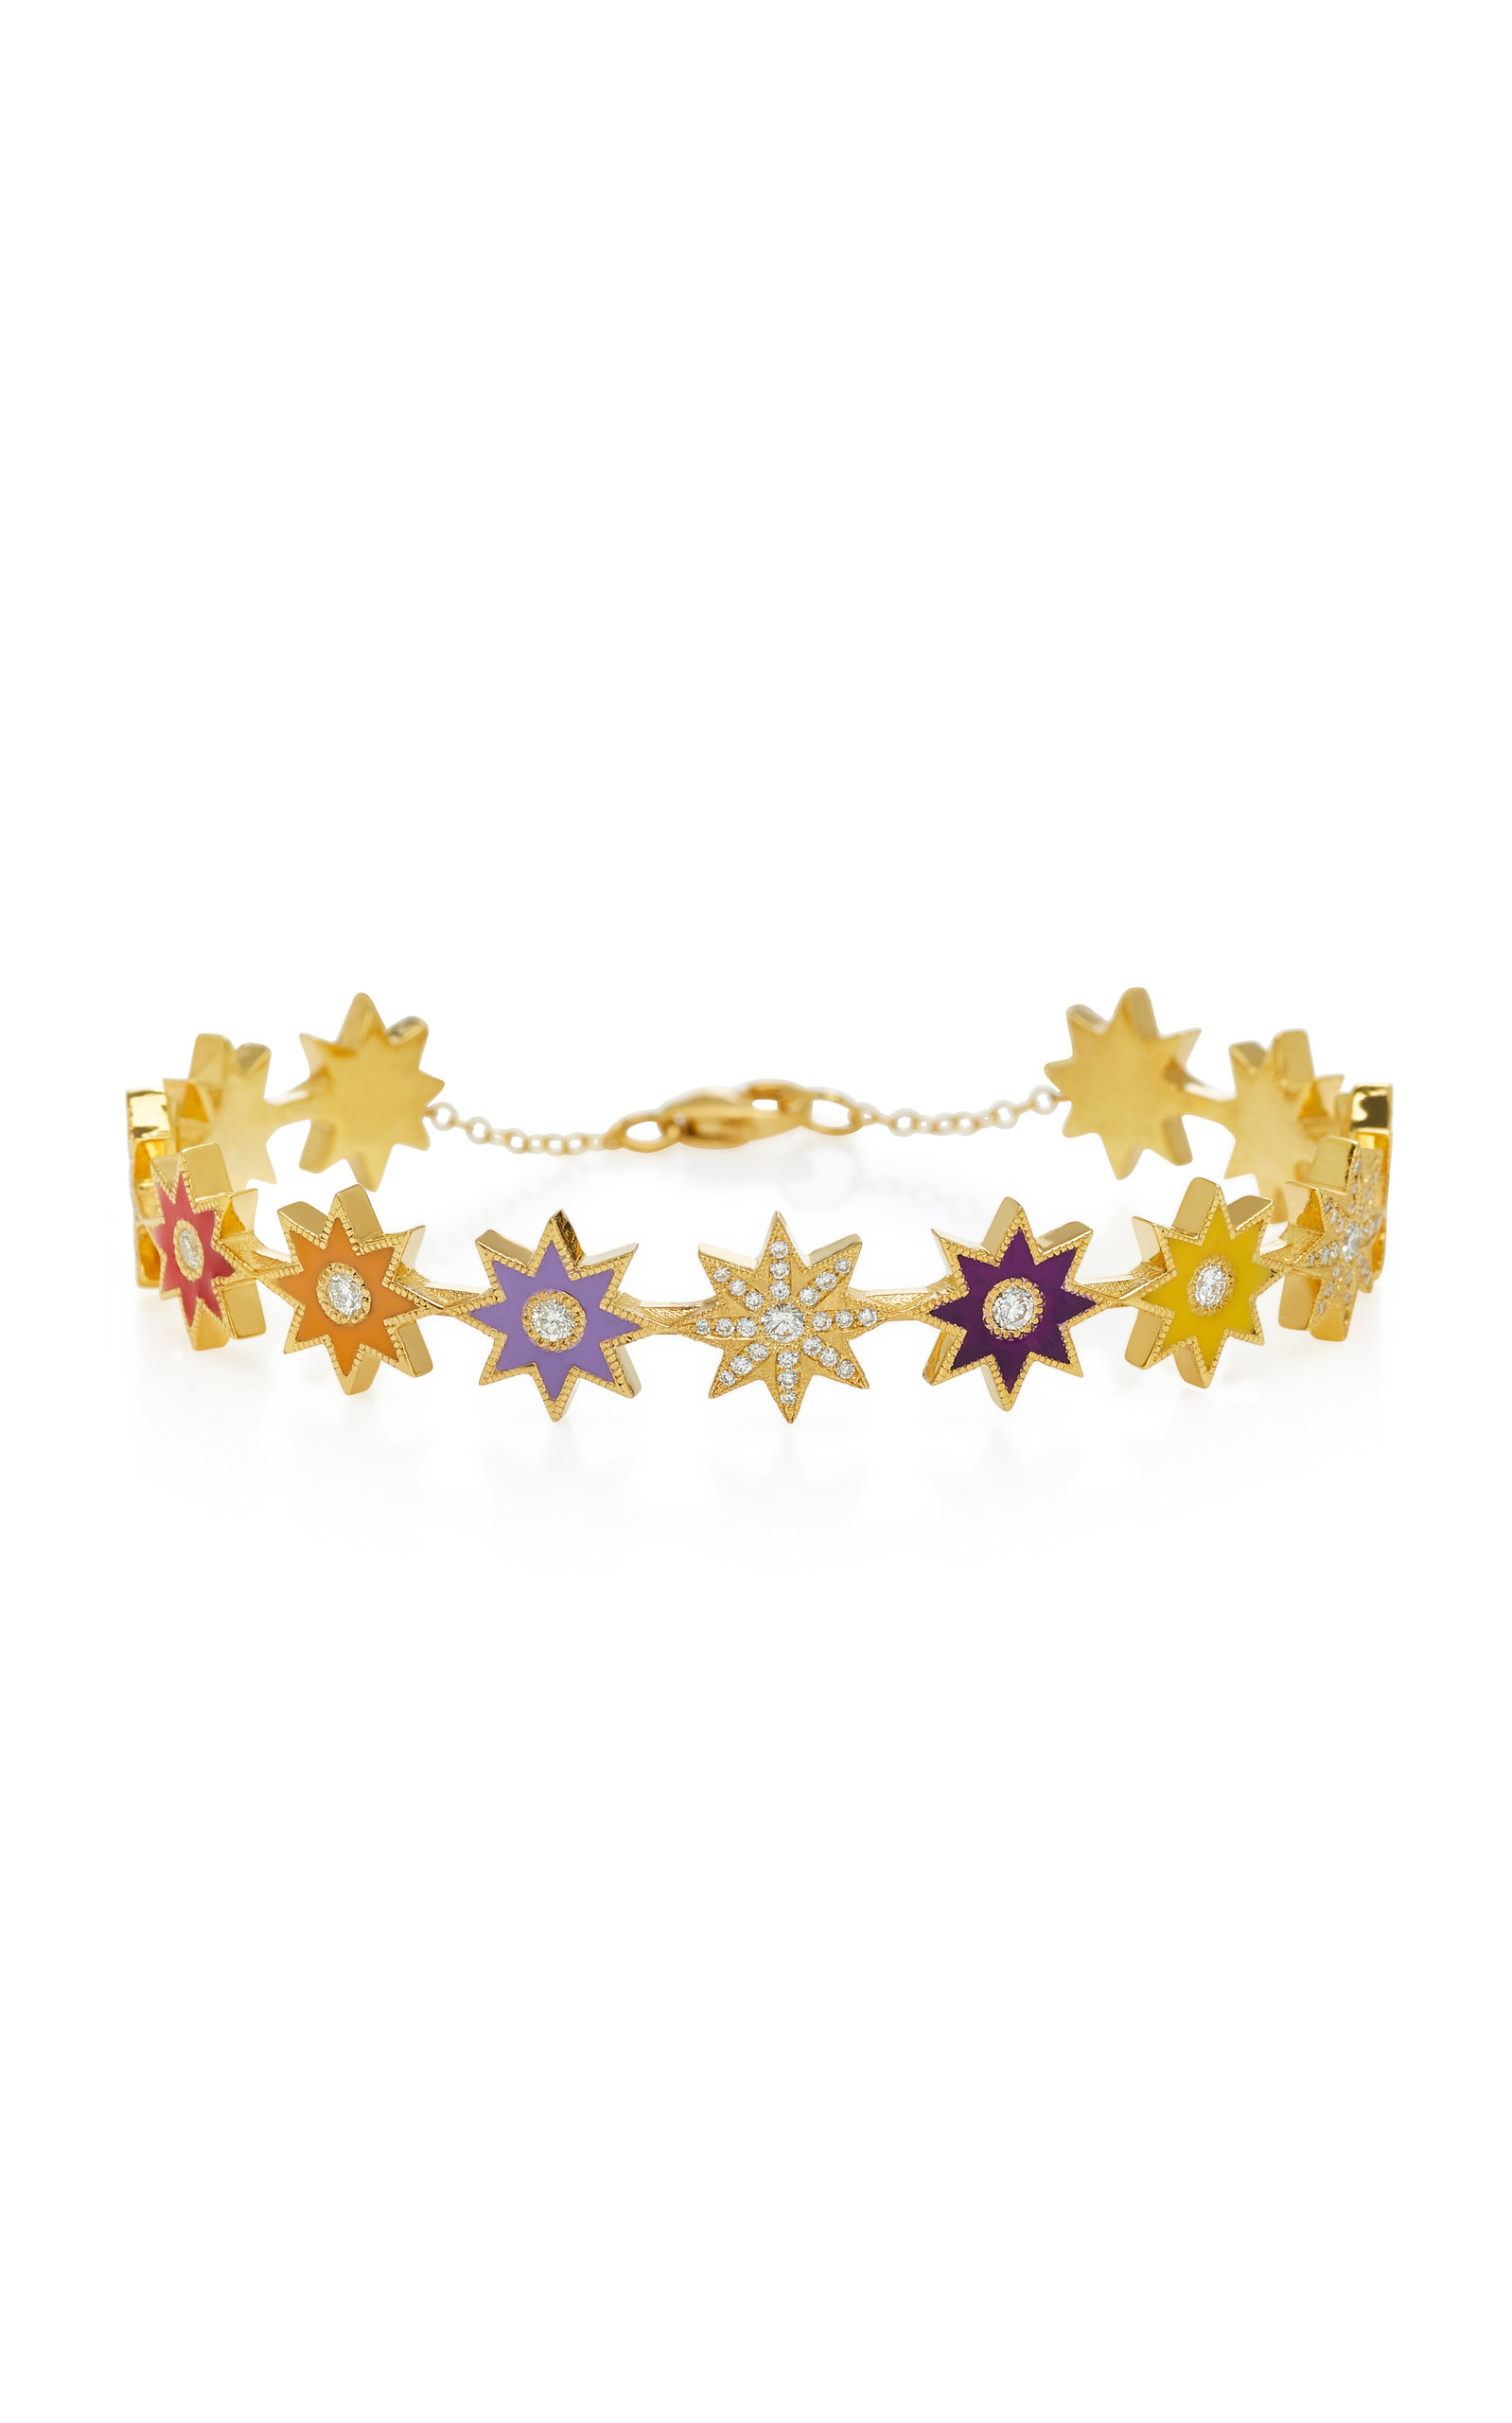 COLETTE JEWELRY 18K GOLD PAVE DIAMOND AND ENAMEL BRACELET